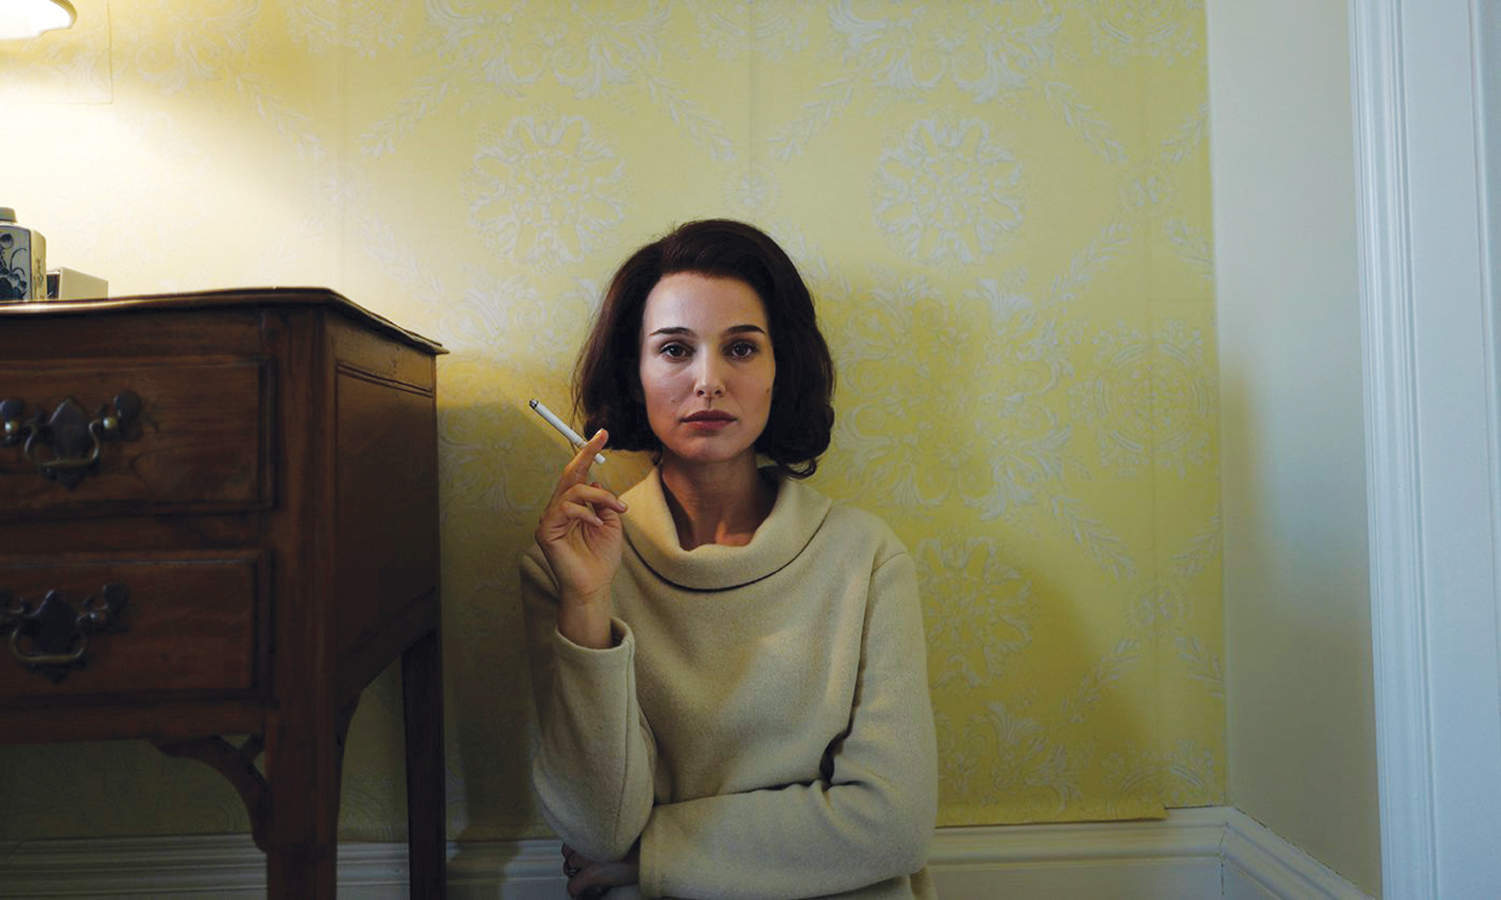 Women on the edge: new films Jackie and Christine are character studies of haunted women